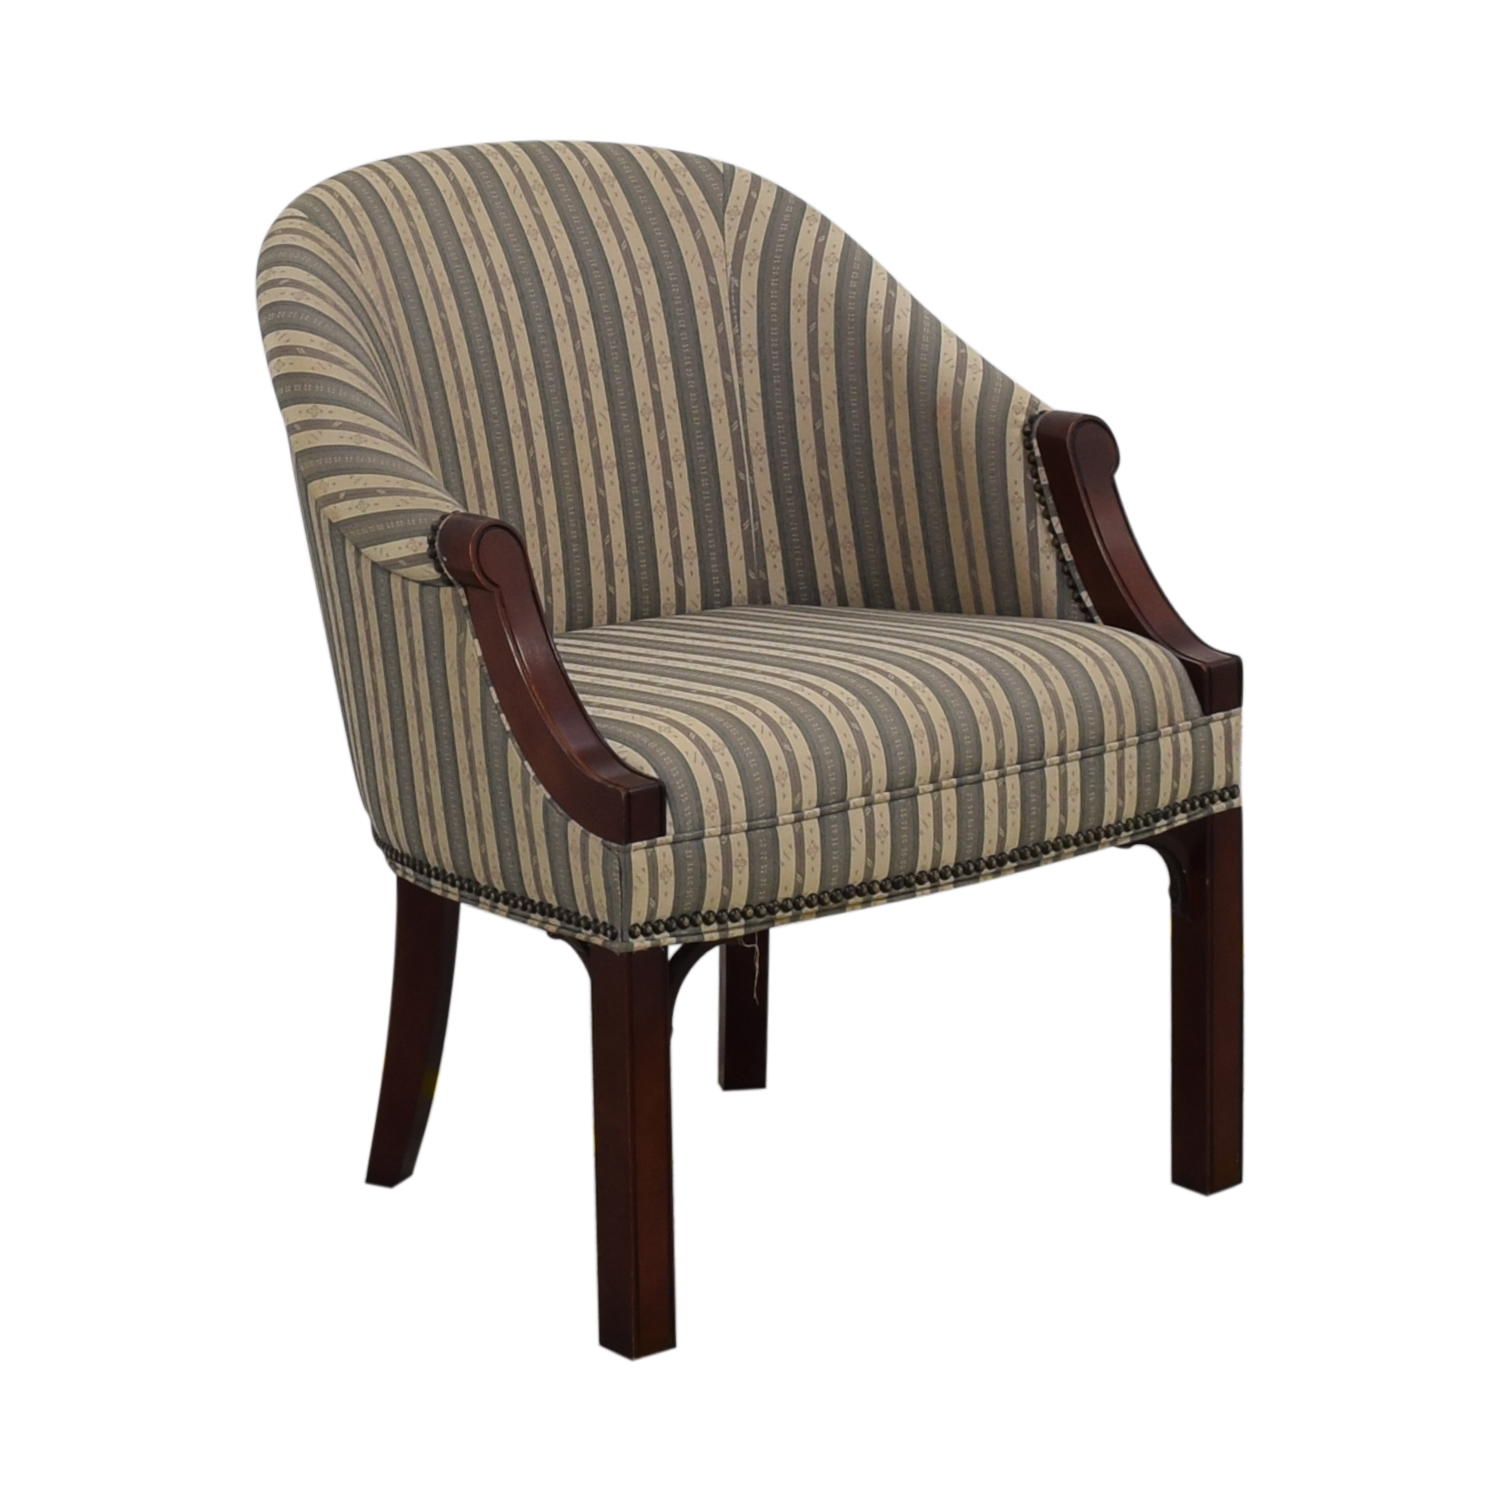 Kimball Kimball Independence Newcastle Striped Chair coupon